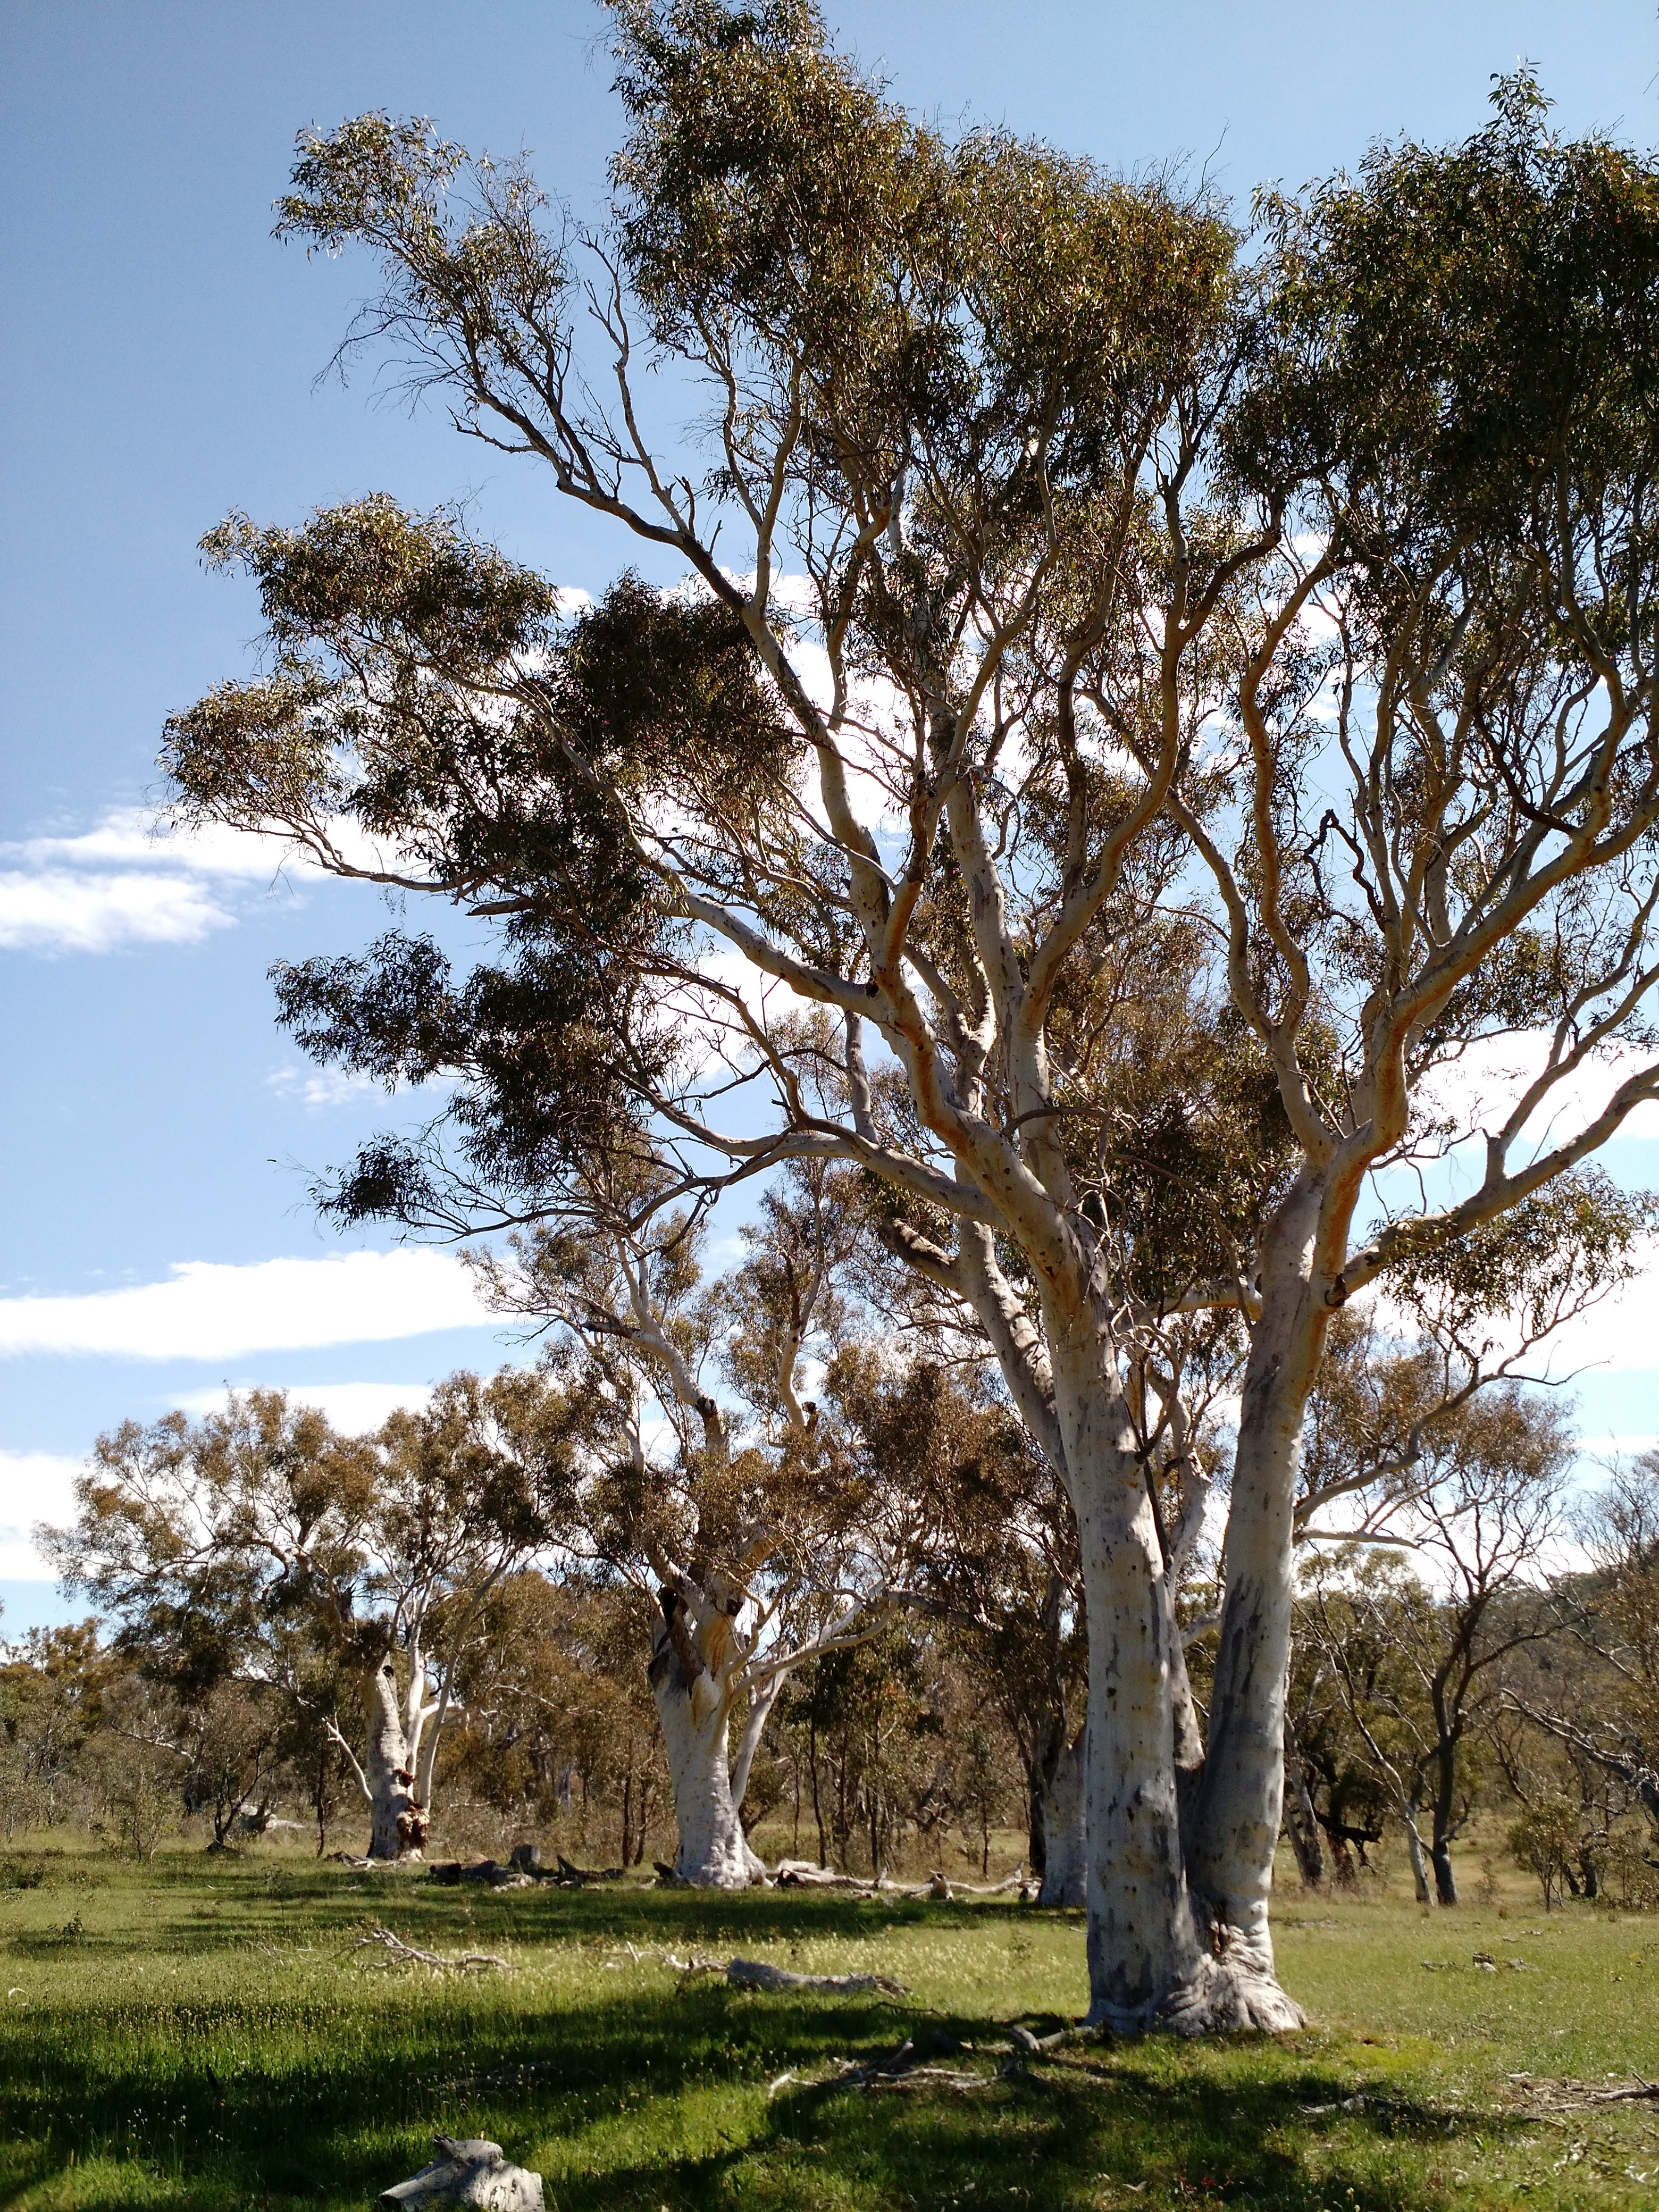 A scribbly gum tree in woodland